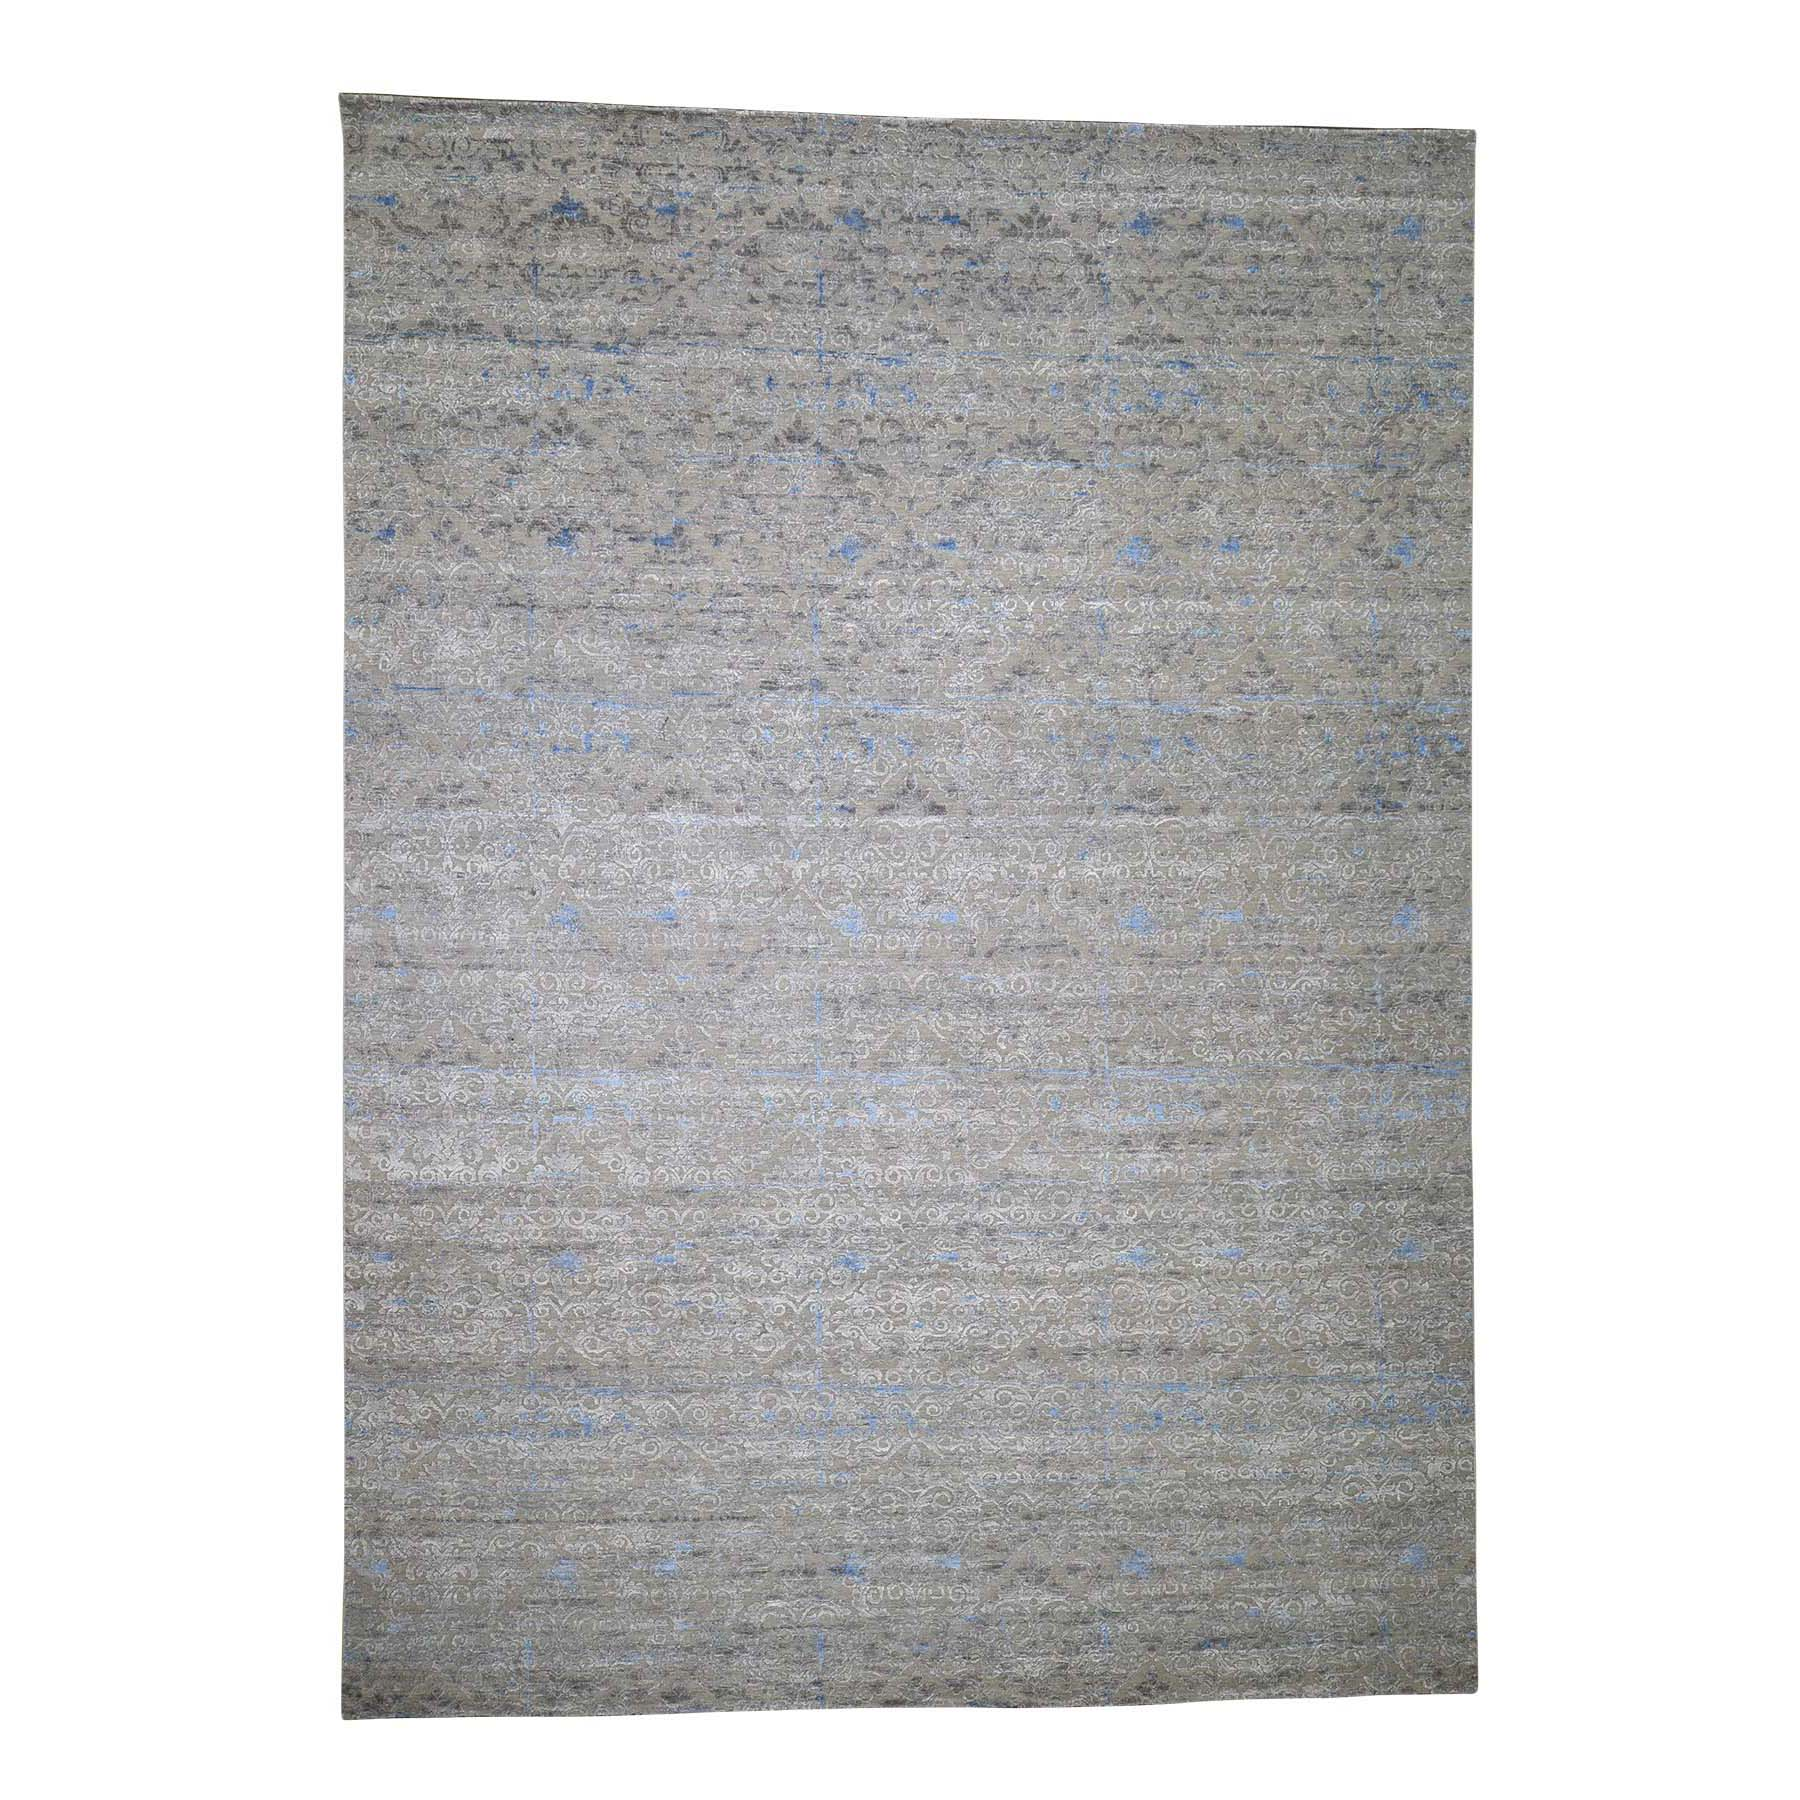 Wool and Real Silk Collection Hand Knotted Grey Rug No: 0188422